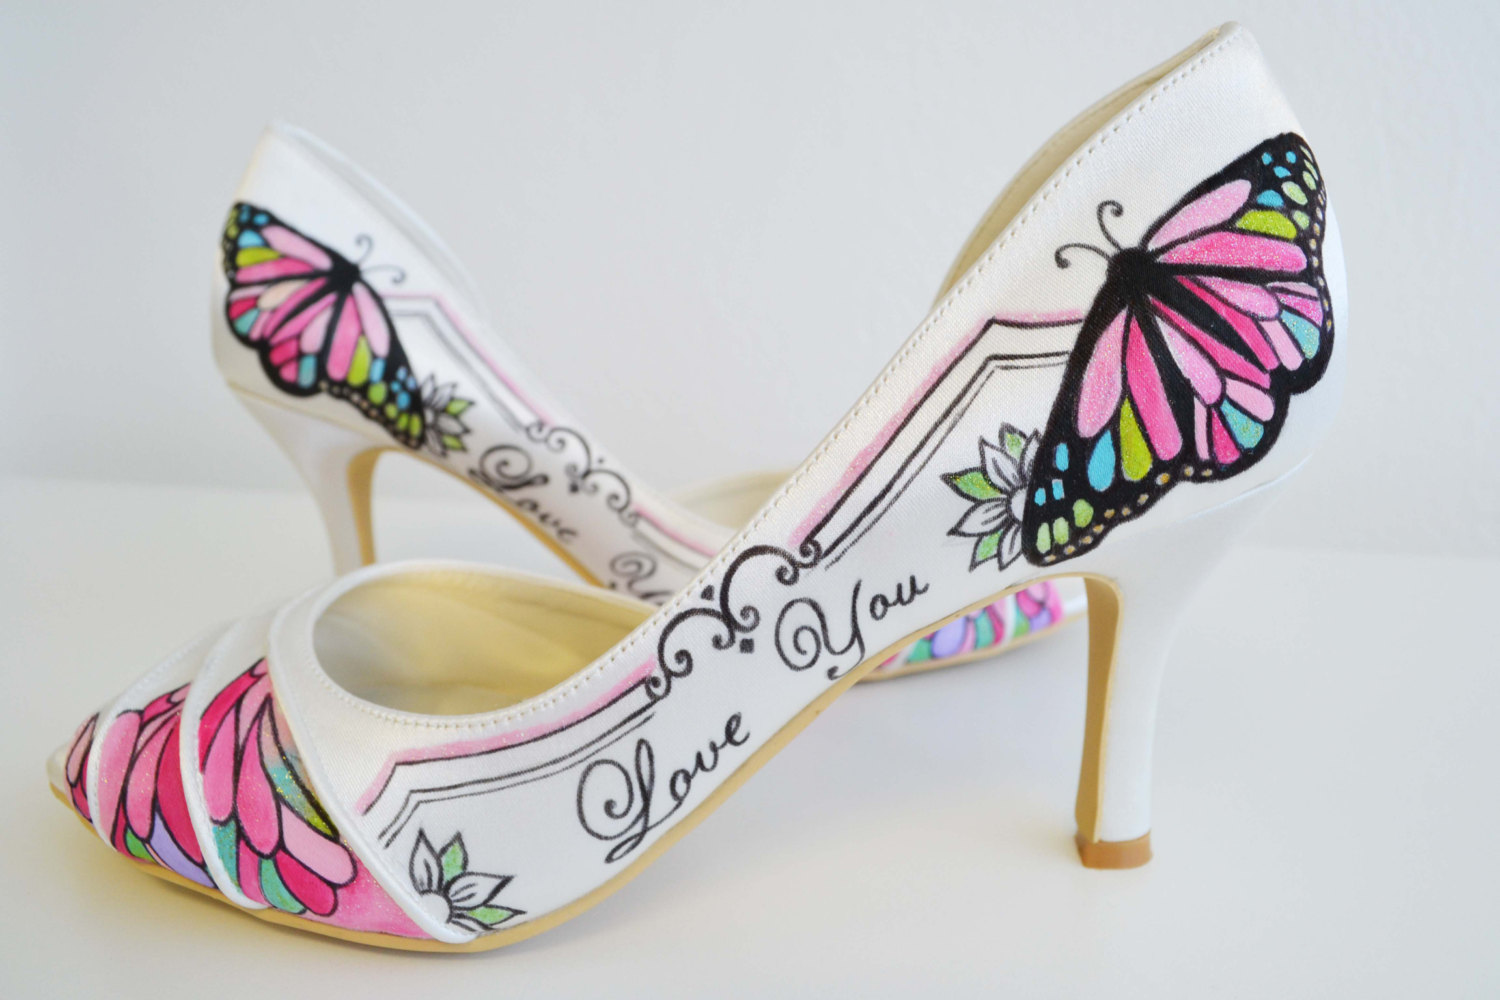 b0d43402d89 Wedding Shoes - Bridal Shoes - Love you Shoes- Hand painted Heels- Pink  Shoes- Butterfly shoes from Ponko World